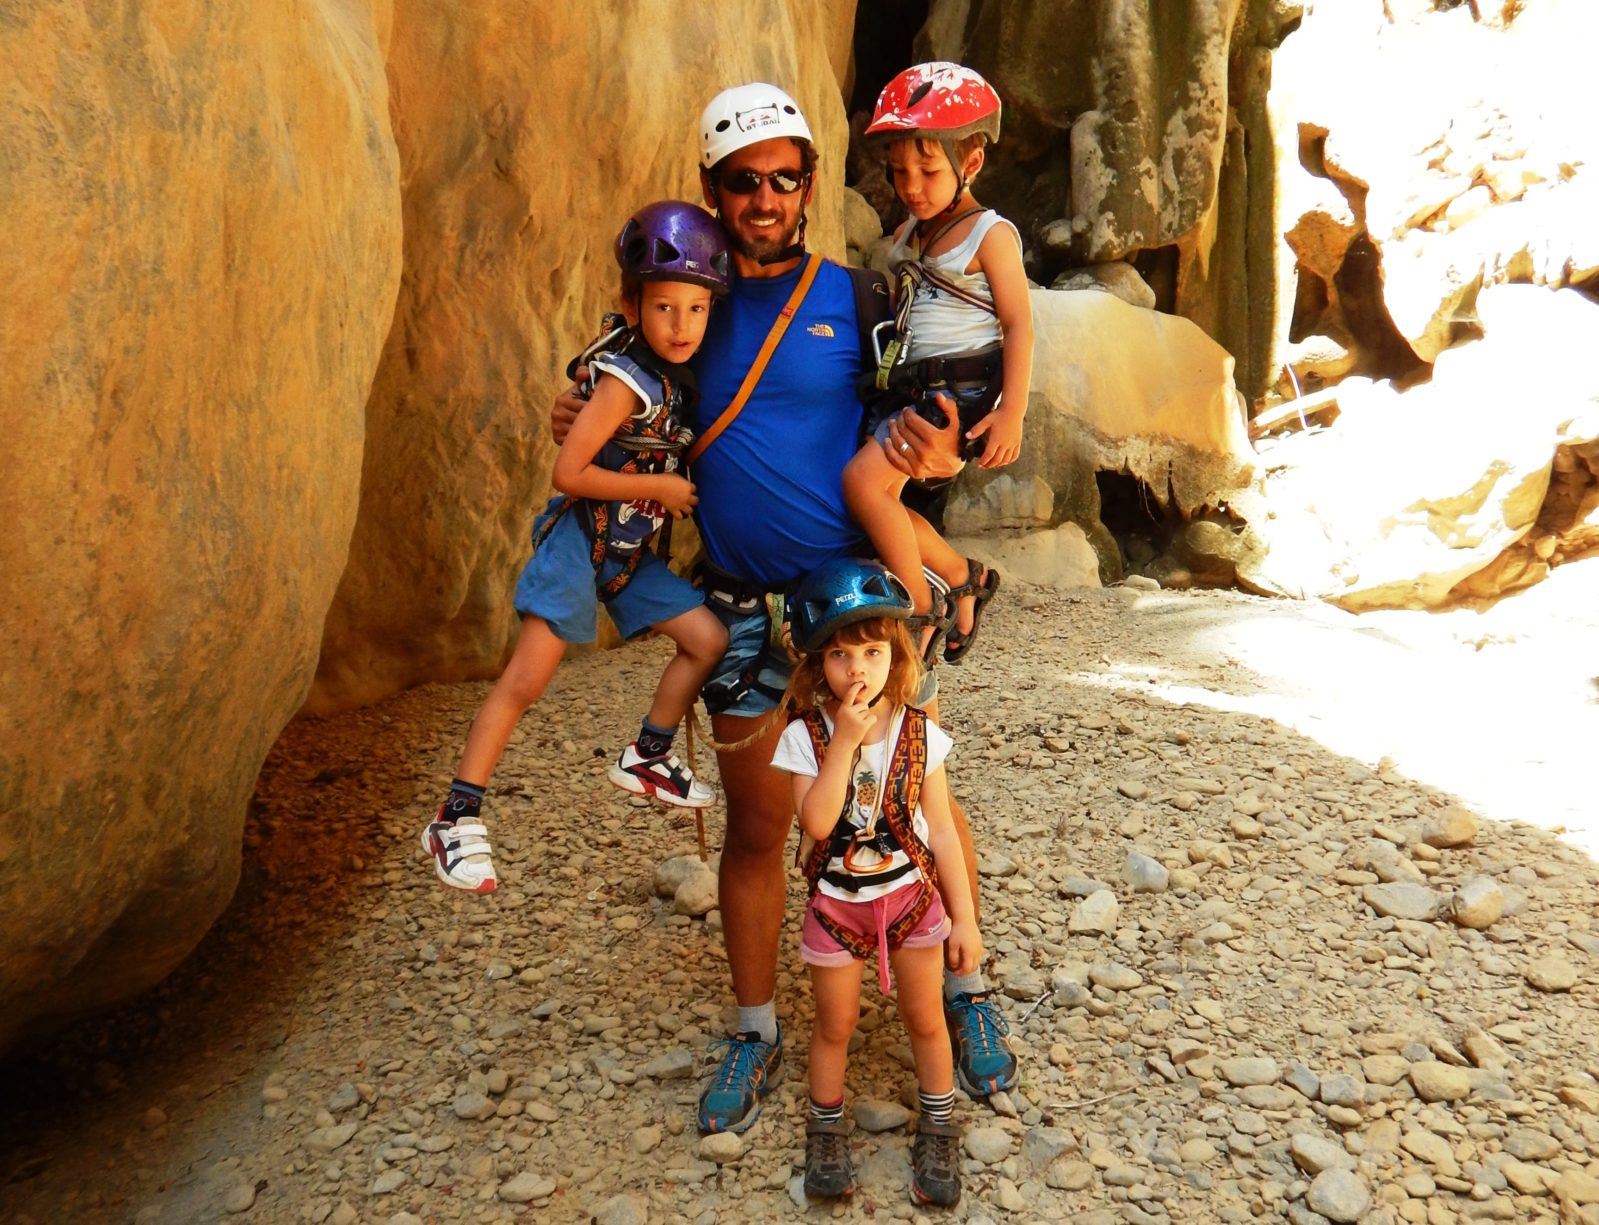 crete outdoor activities kids love greece canyoning family adventure